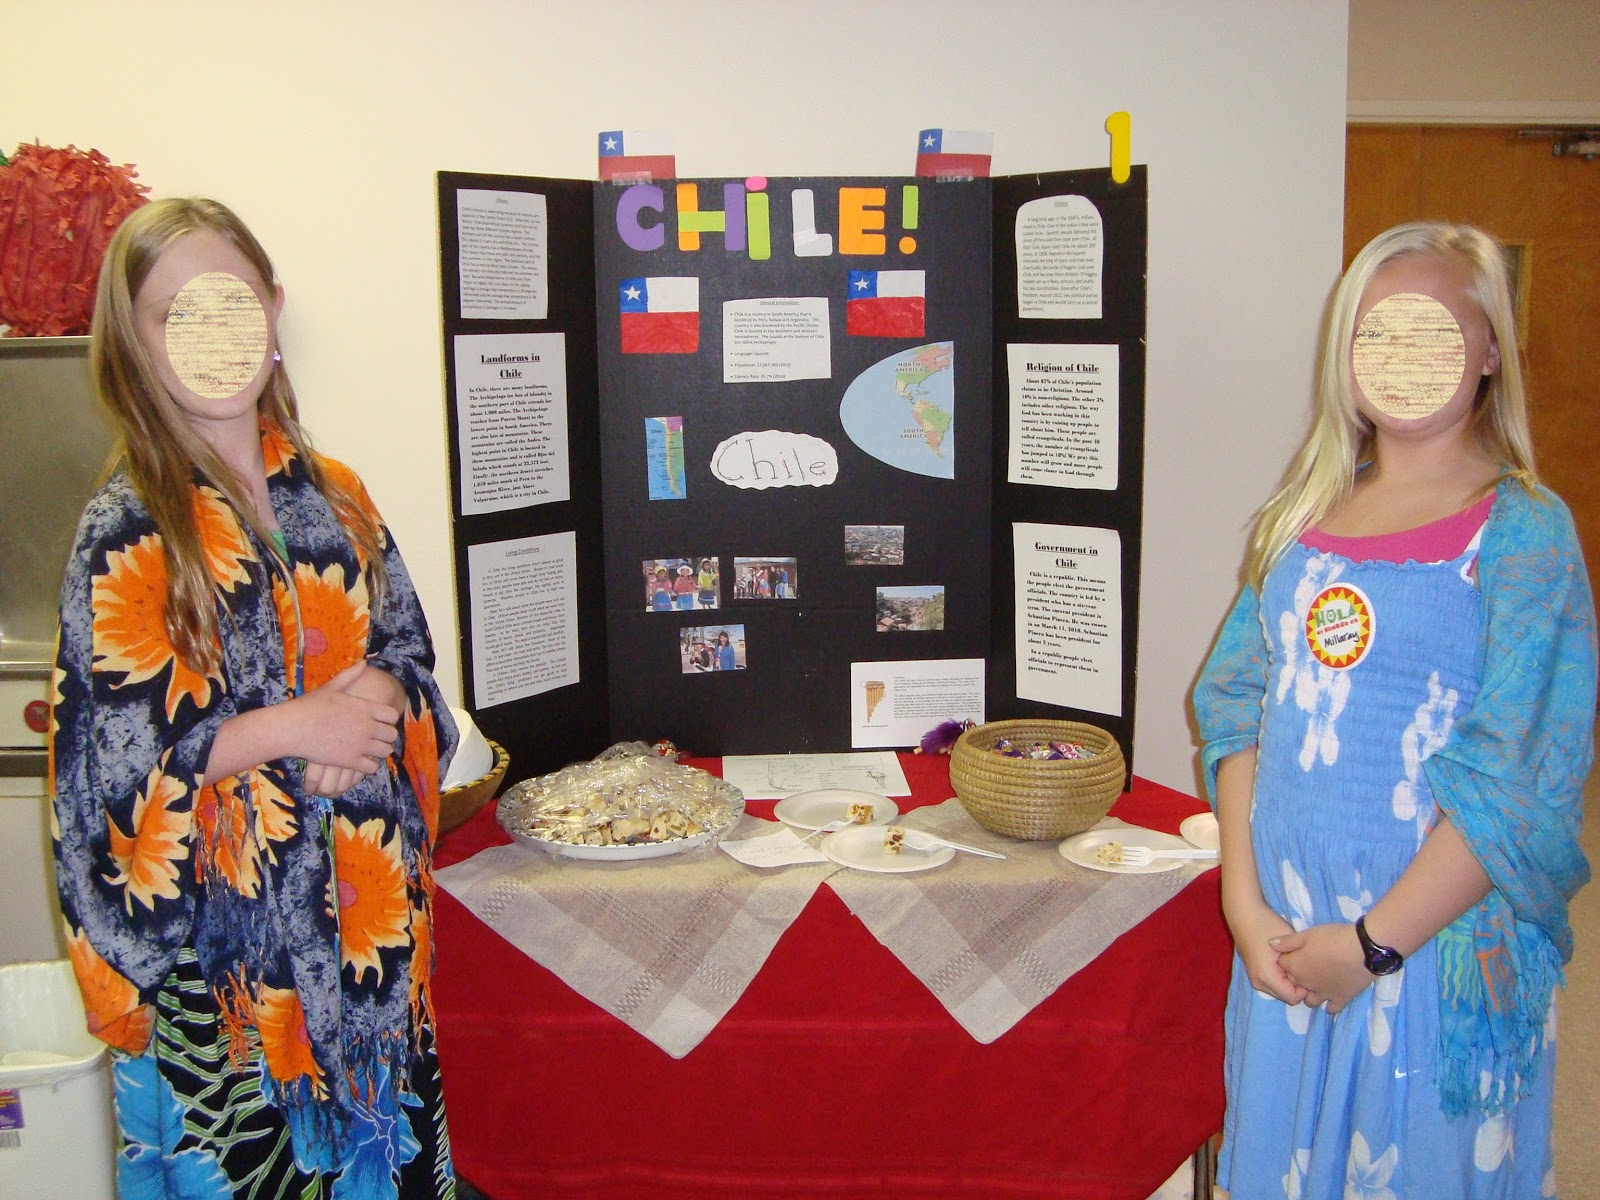 Latin American Festival on Science Fair Projects For 5th Graders